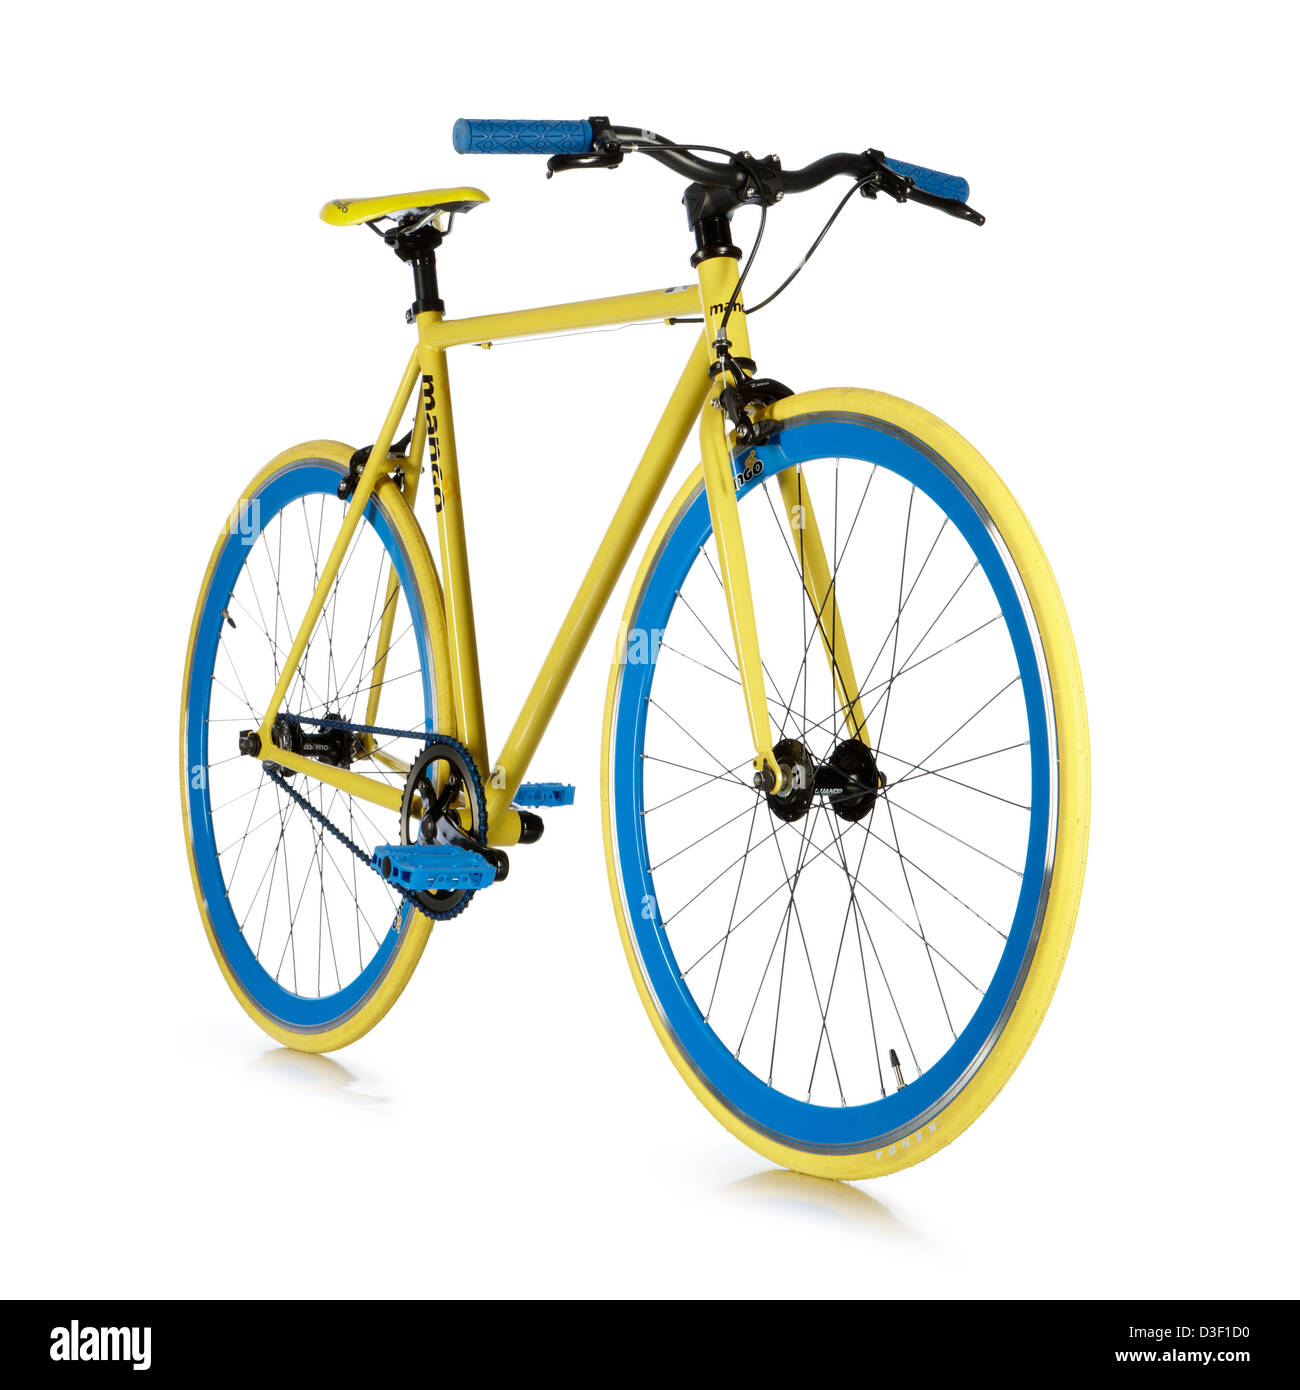 Single speed bicycle yellow blue custom build - Stock Image